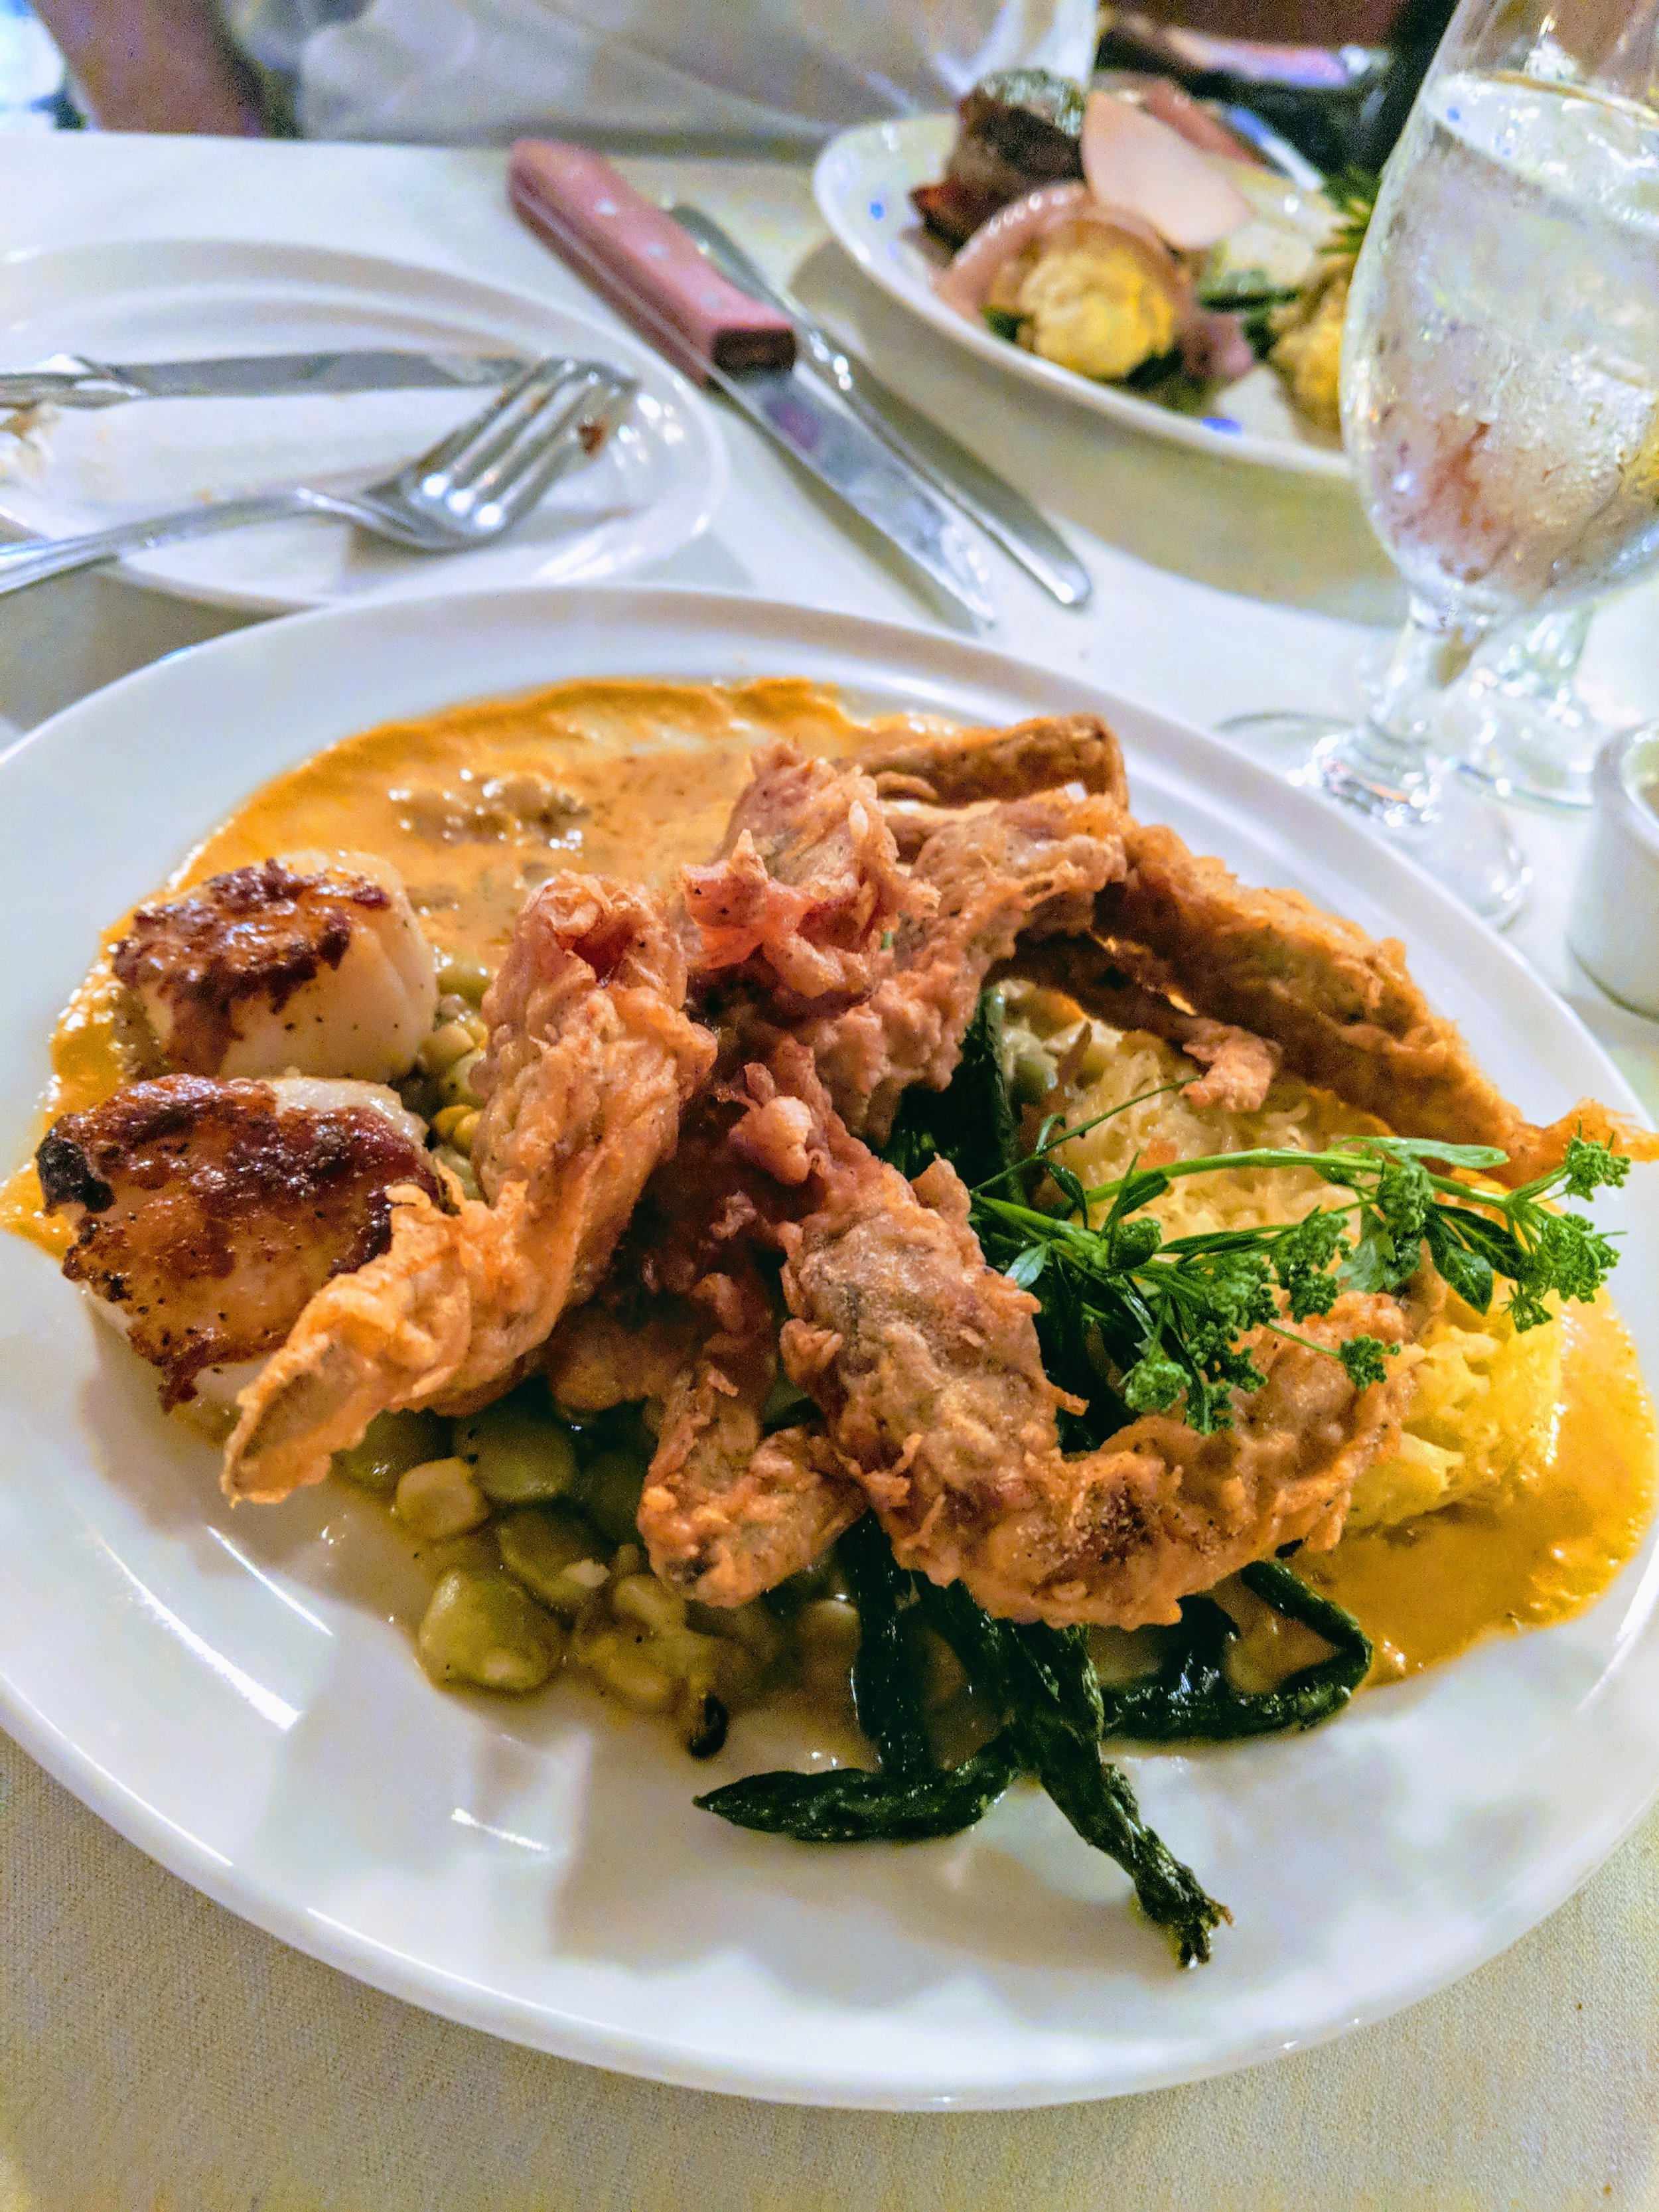 My soft shell crab....whole!